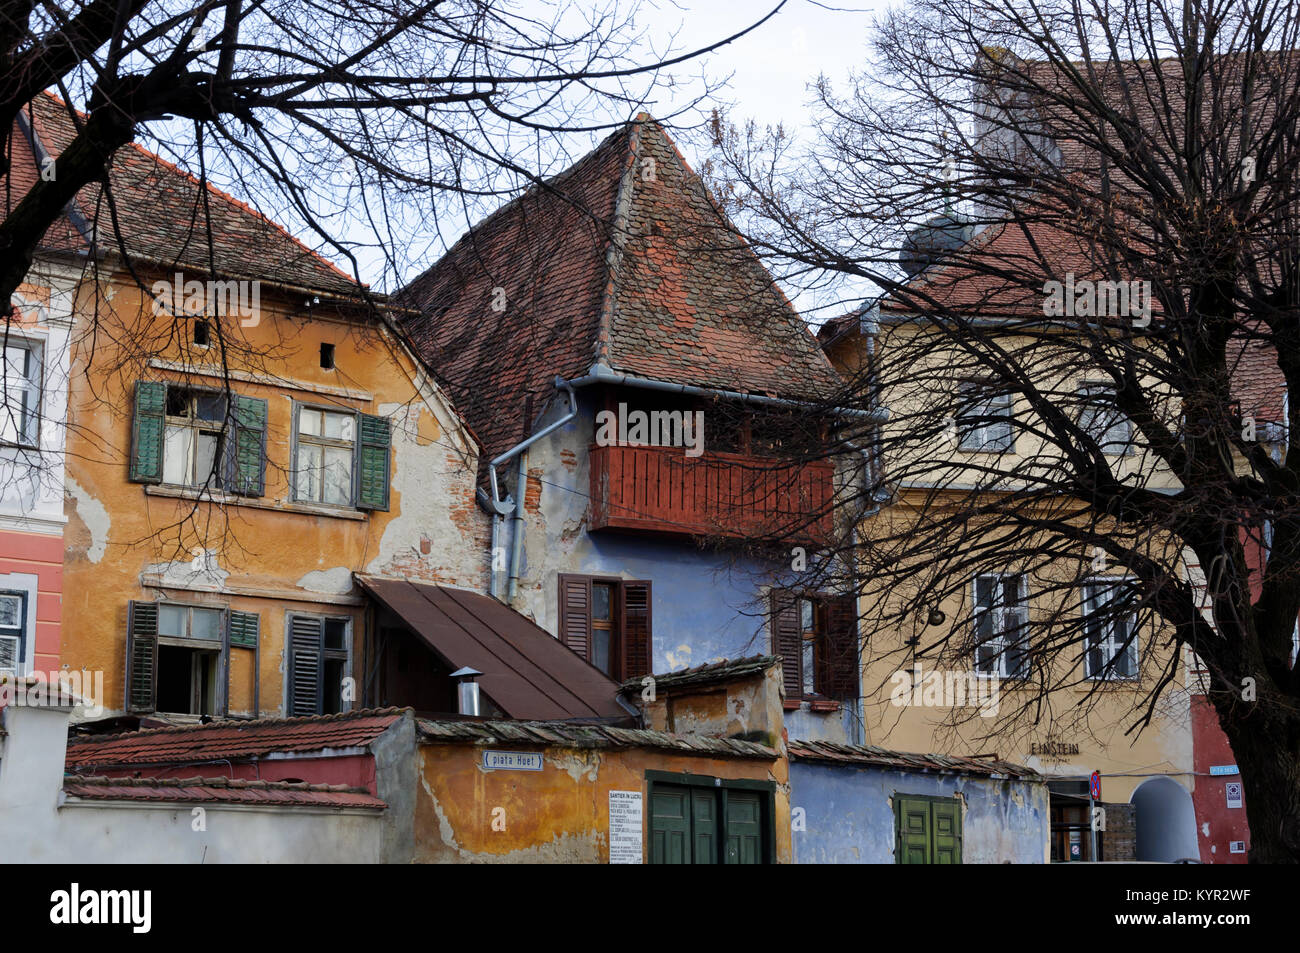 Sibiu's picturesque Old Town - Stock Image